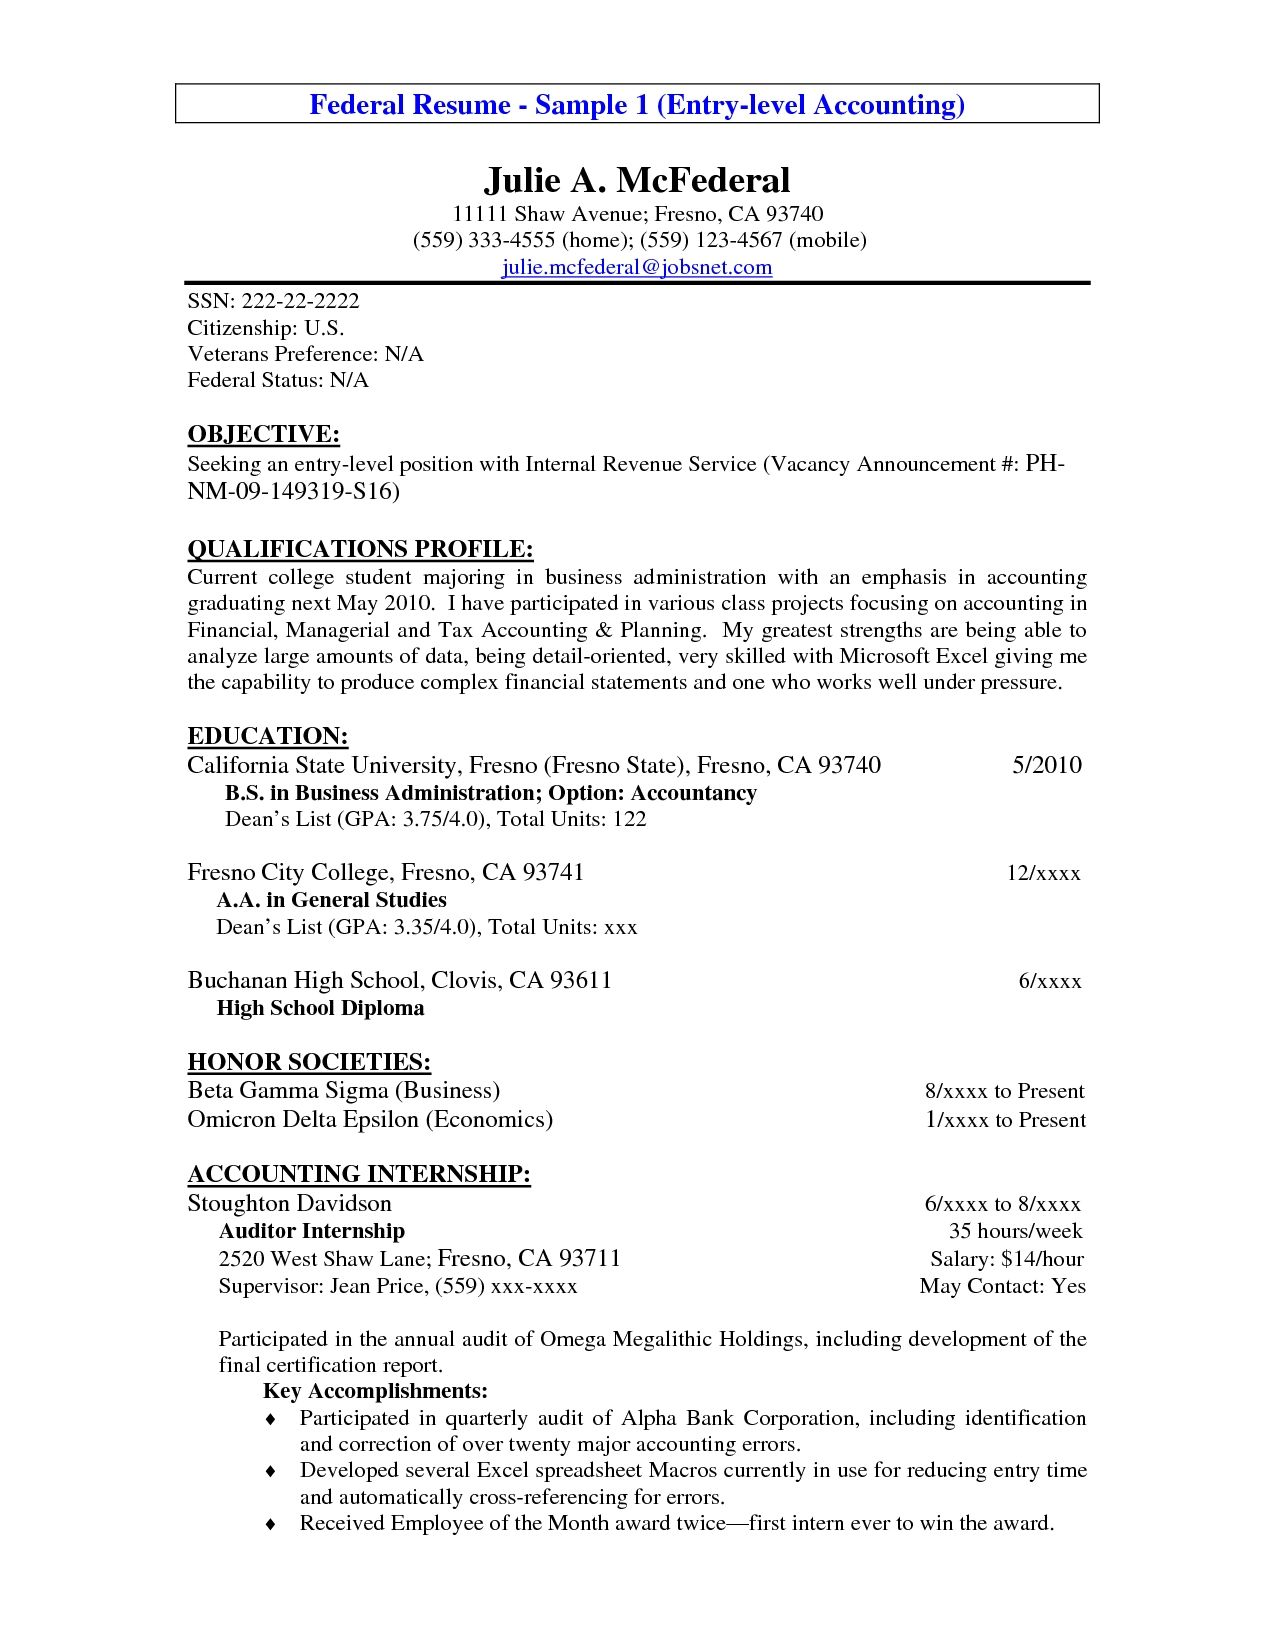 entry level resume example entry level accounting resume sample 4b6c55396be0e1e55c4519cb8c5ab94c 557531628853970129 entry level resumes templates - Sample Entry Level Resume Templates